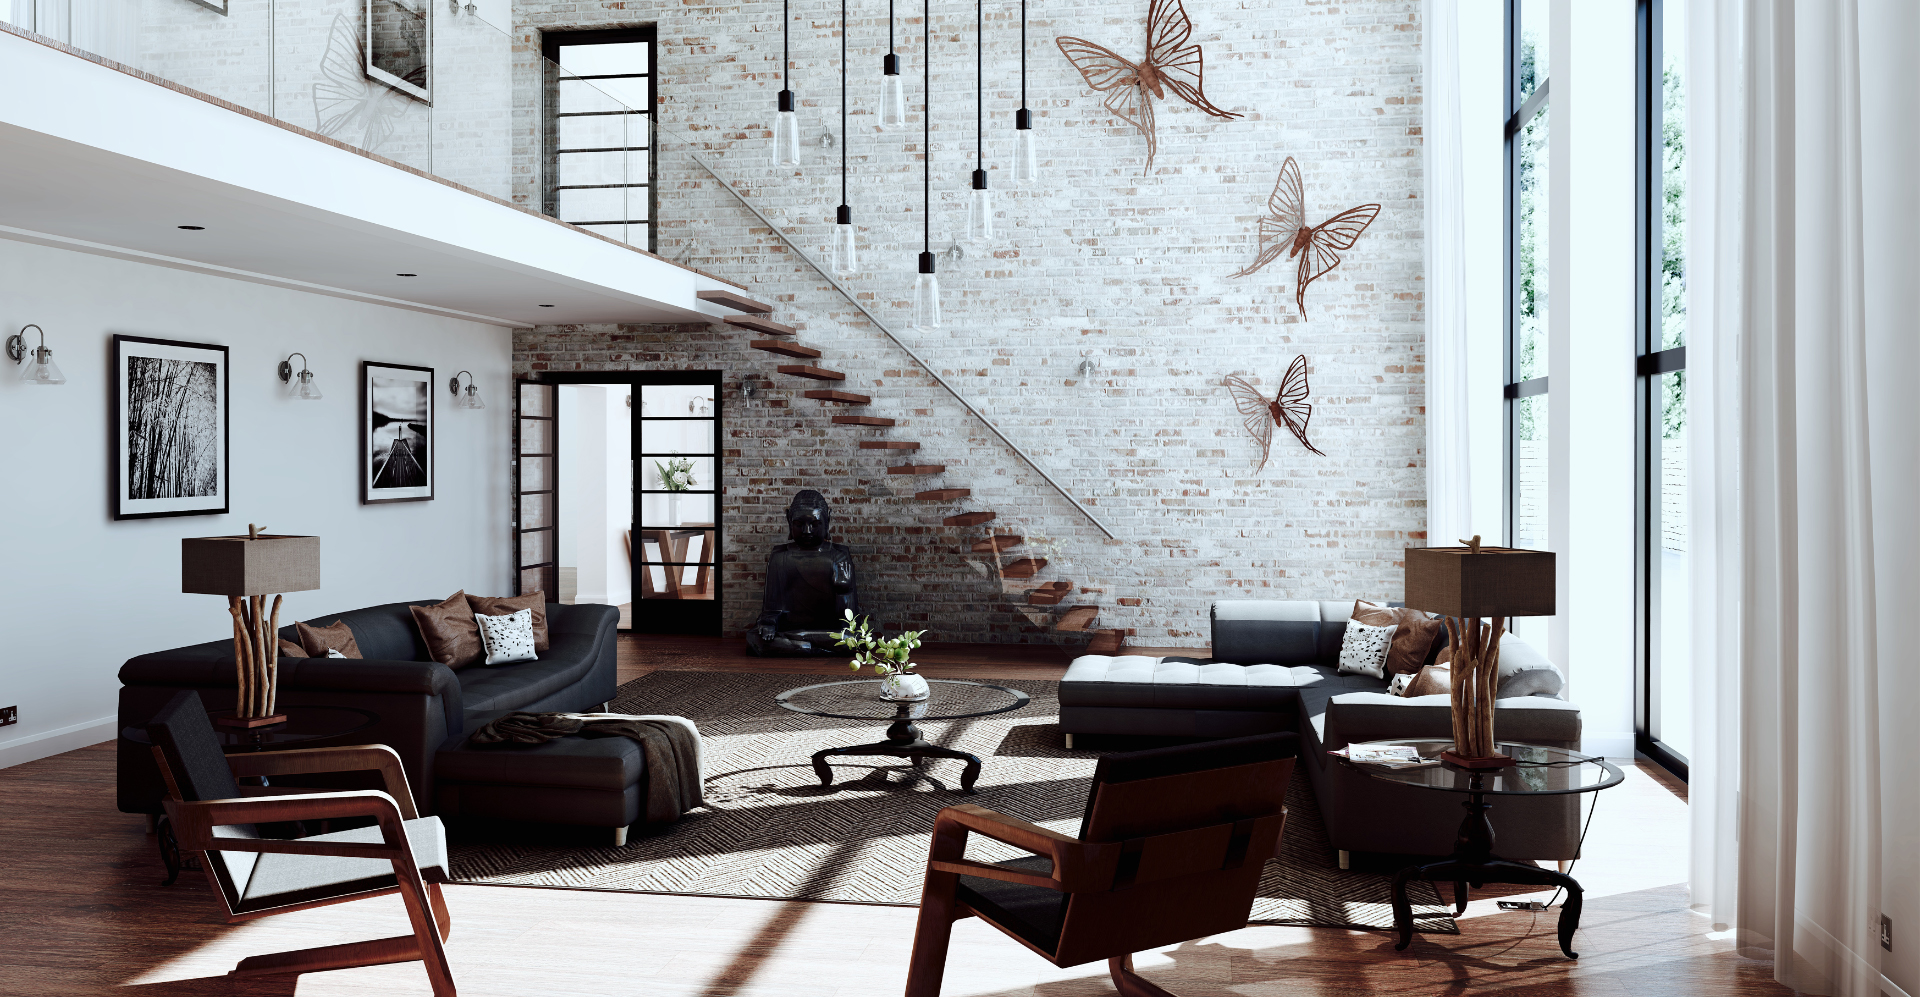 SU Podium living room render